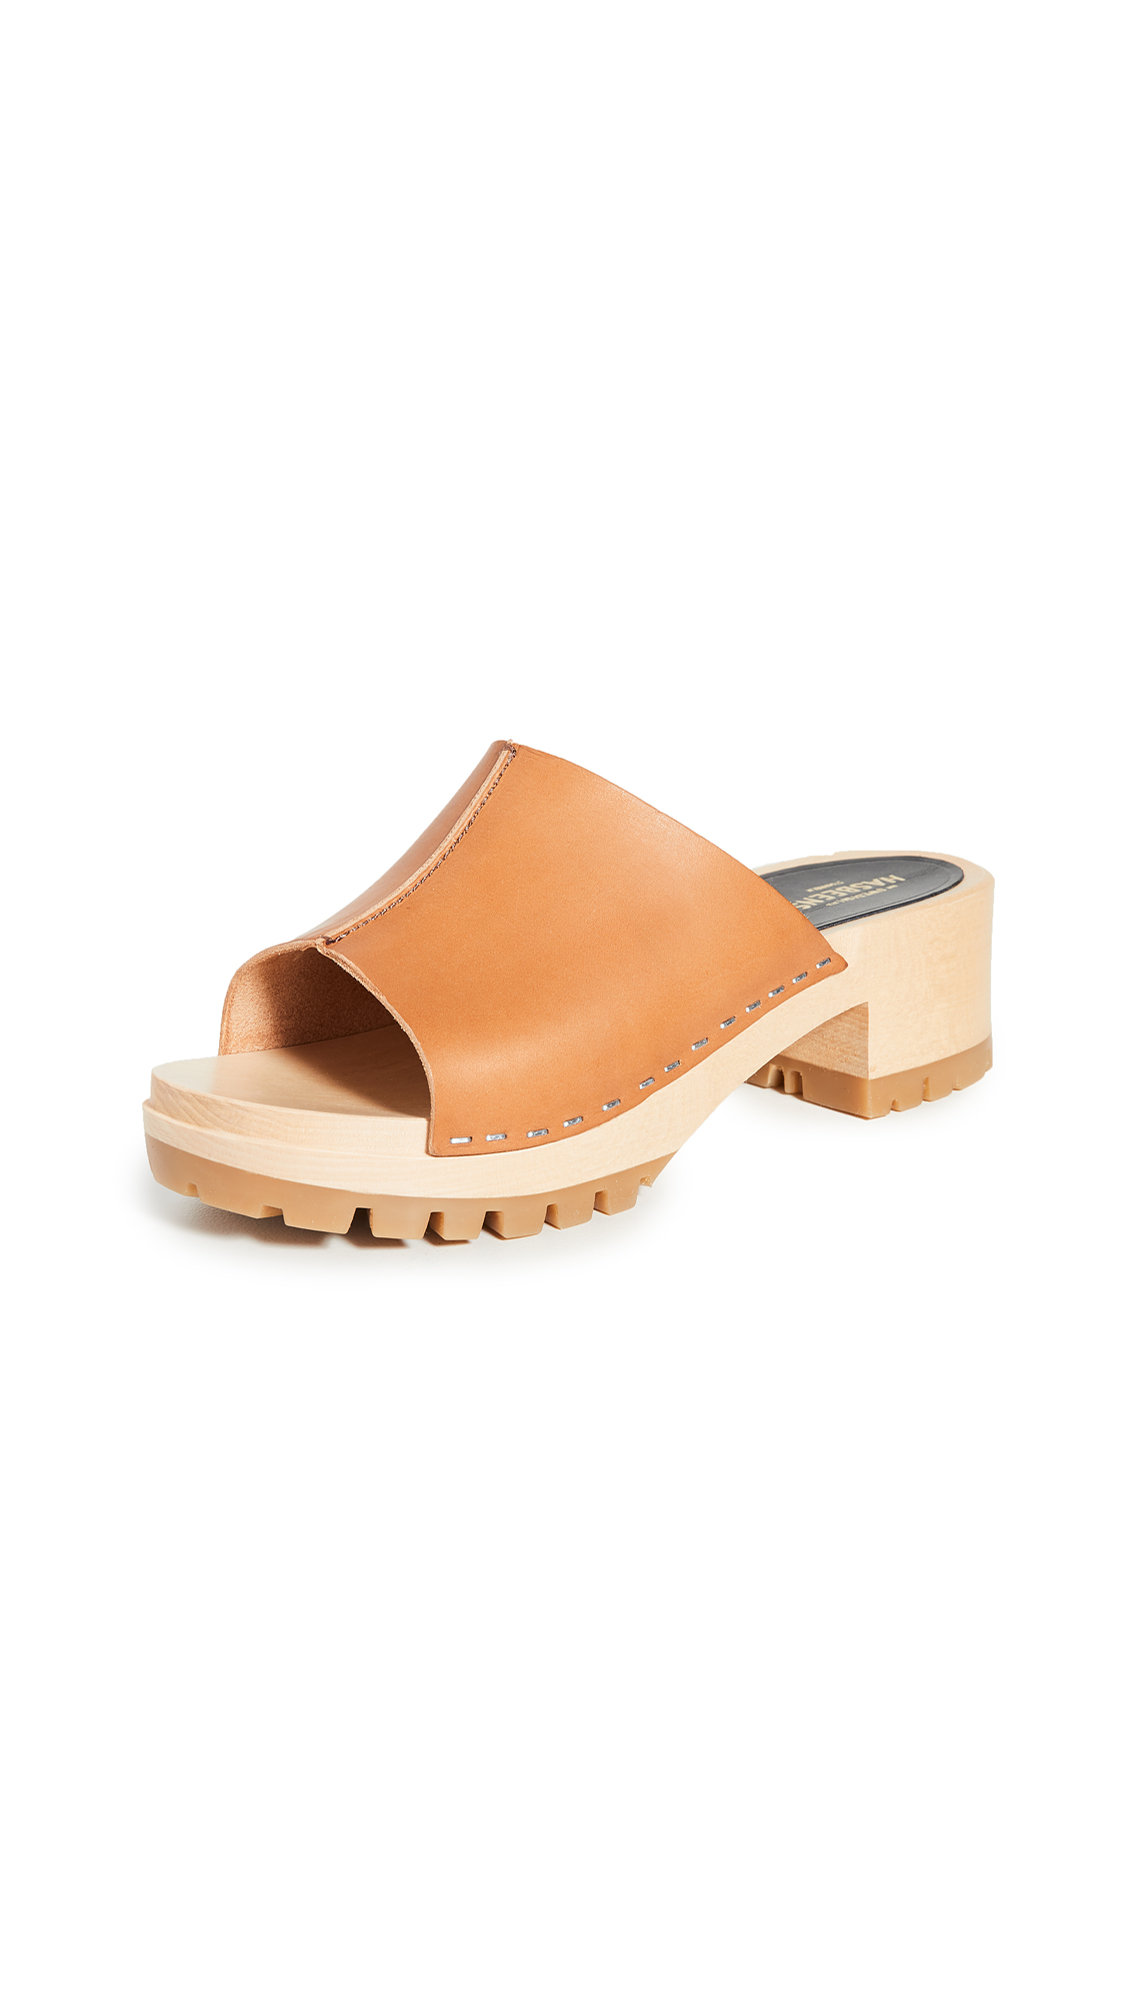 Swedish Hasbeens Ann Low Clogs - 30% Off Sale